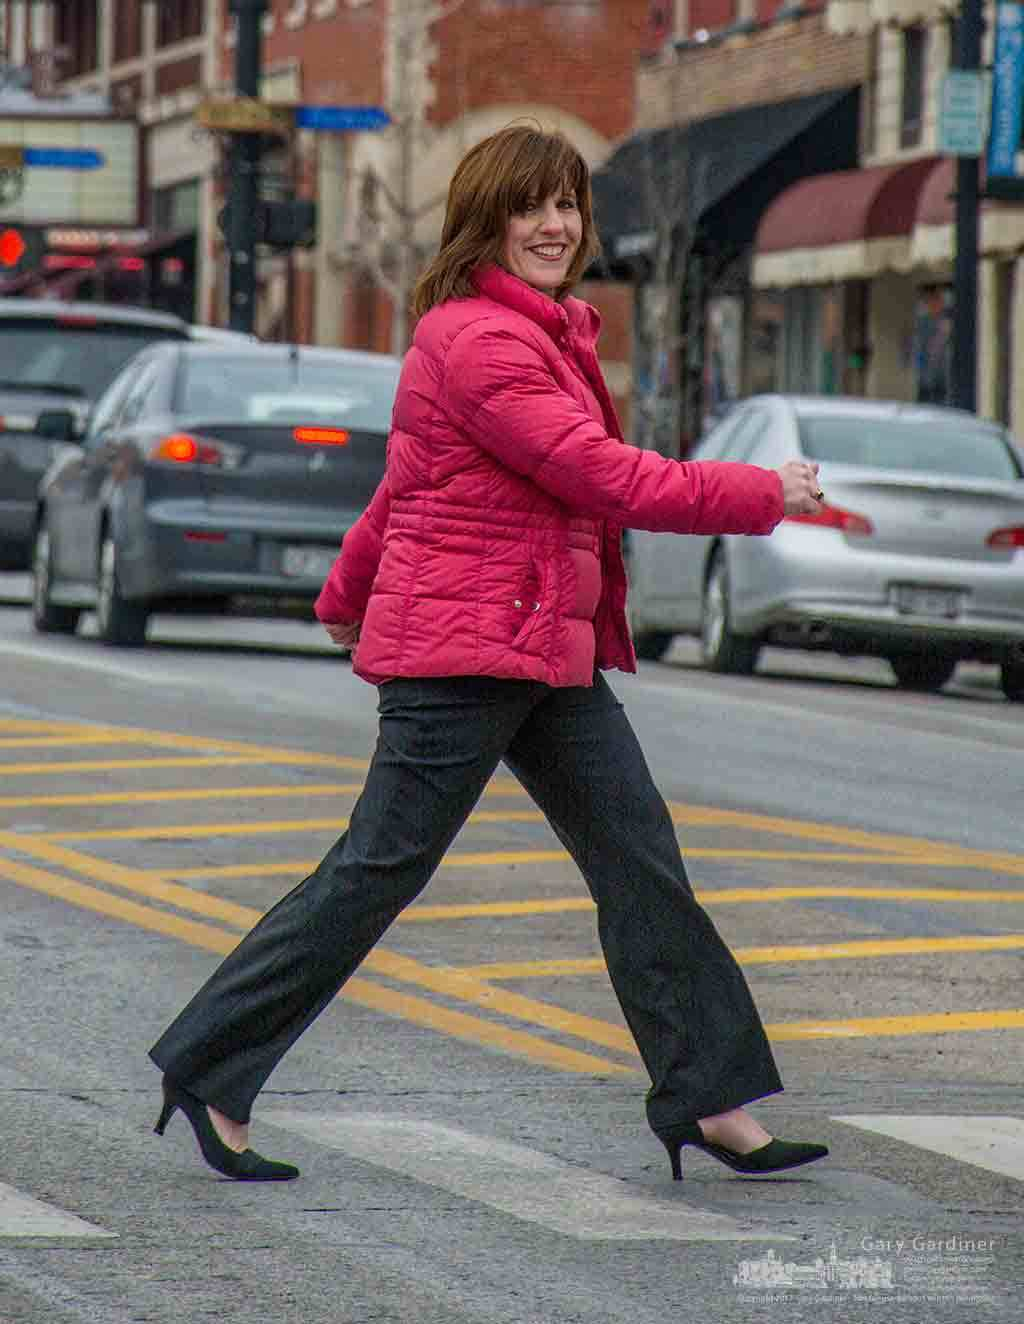 Newly named Uptown Westerville Executive Director Lynn Aventino walks across State Street during a photo session in Uptown.